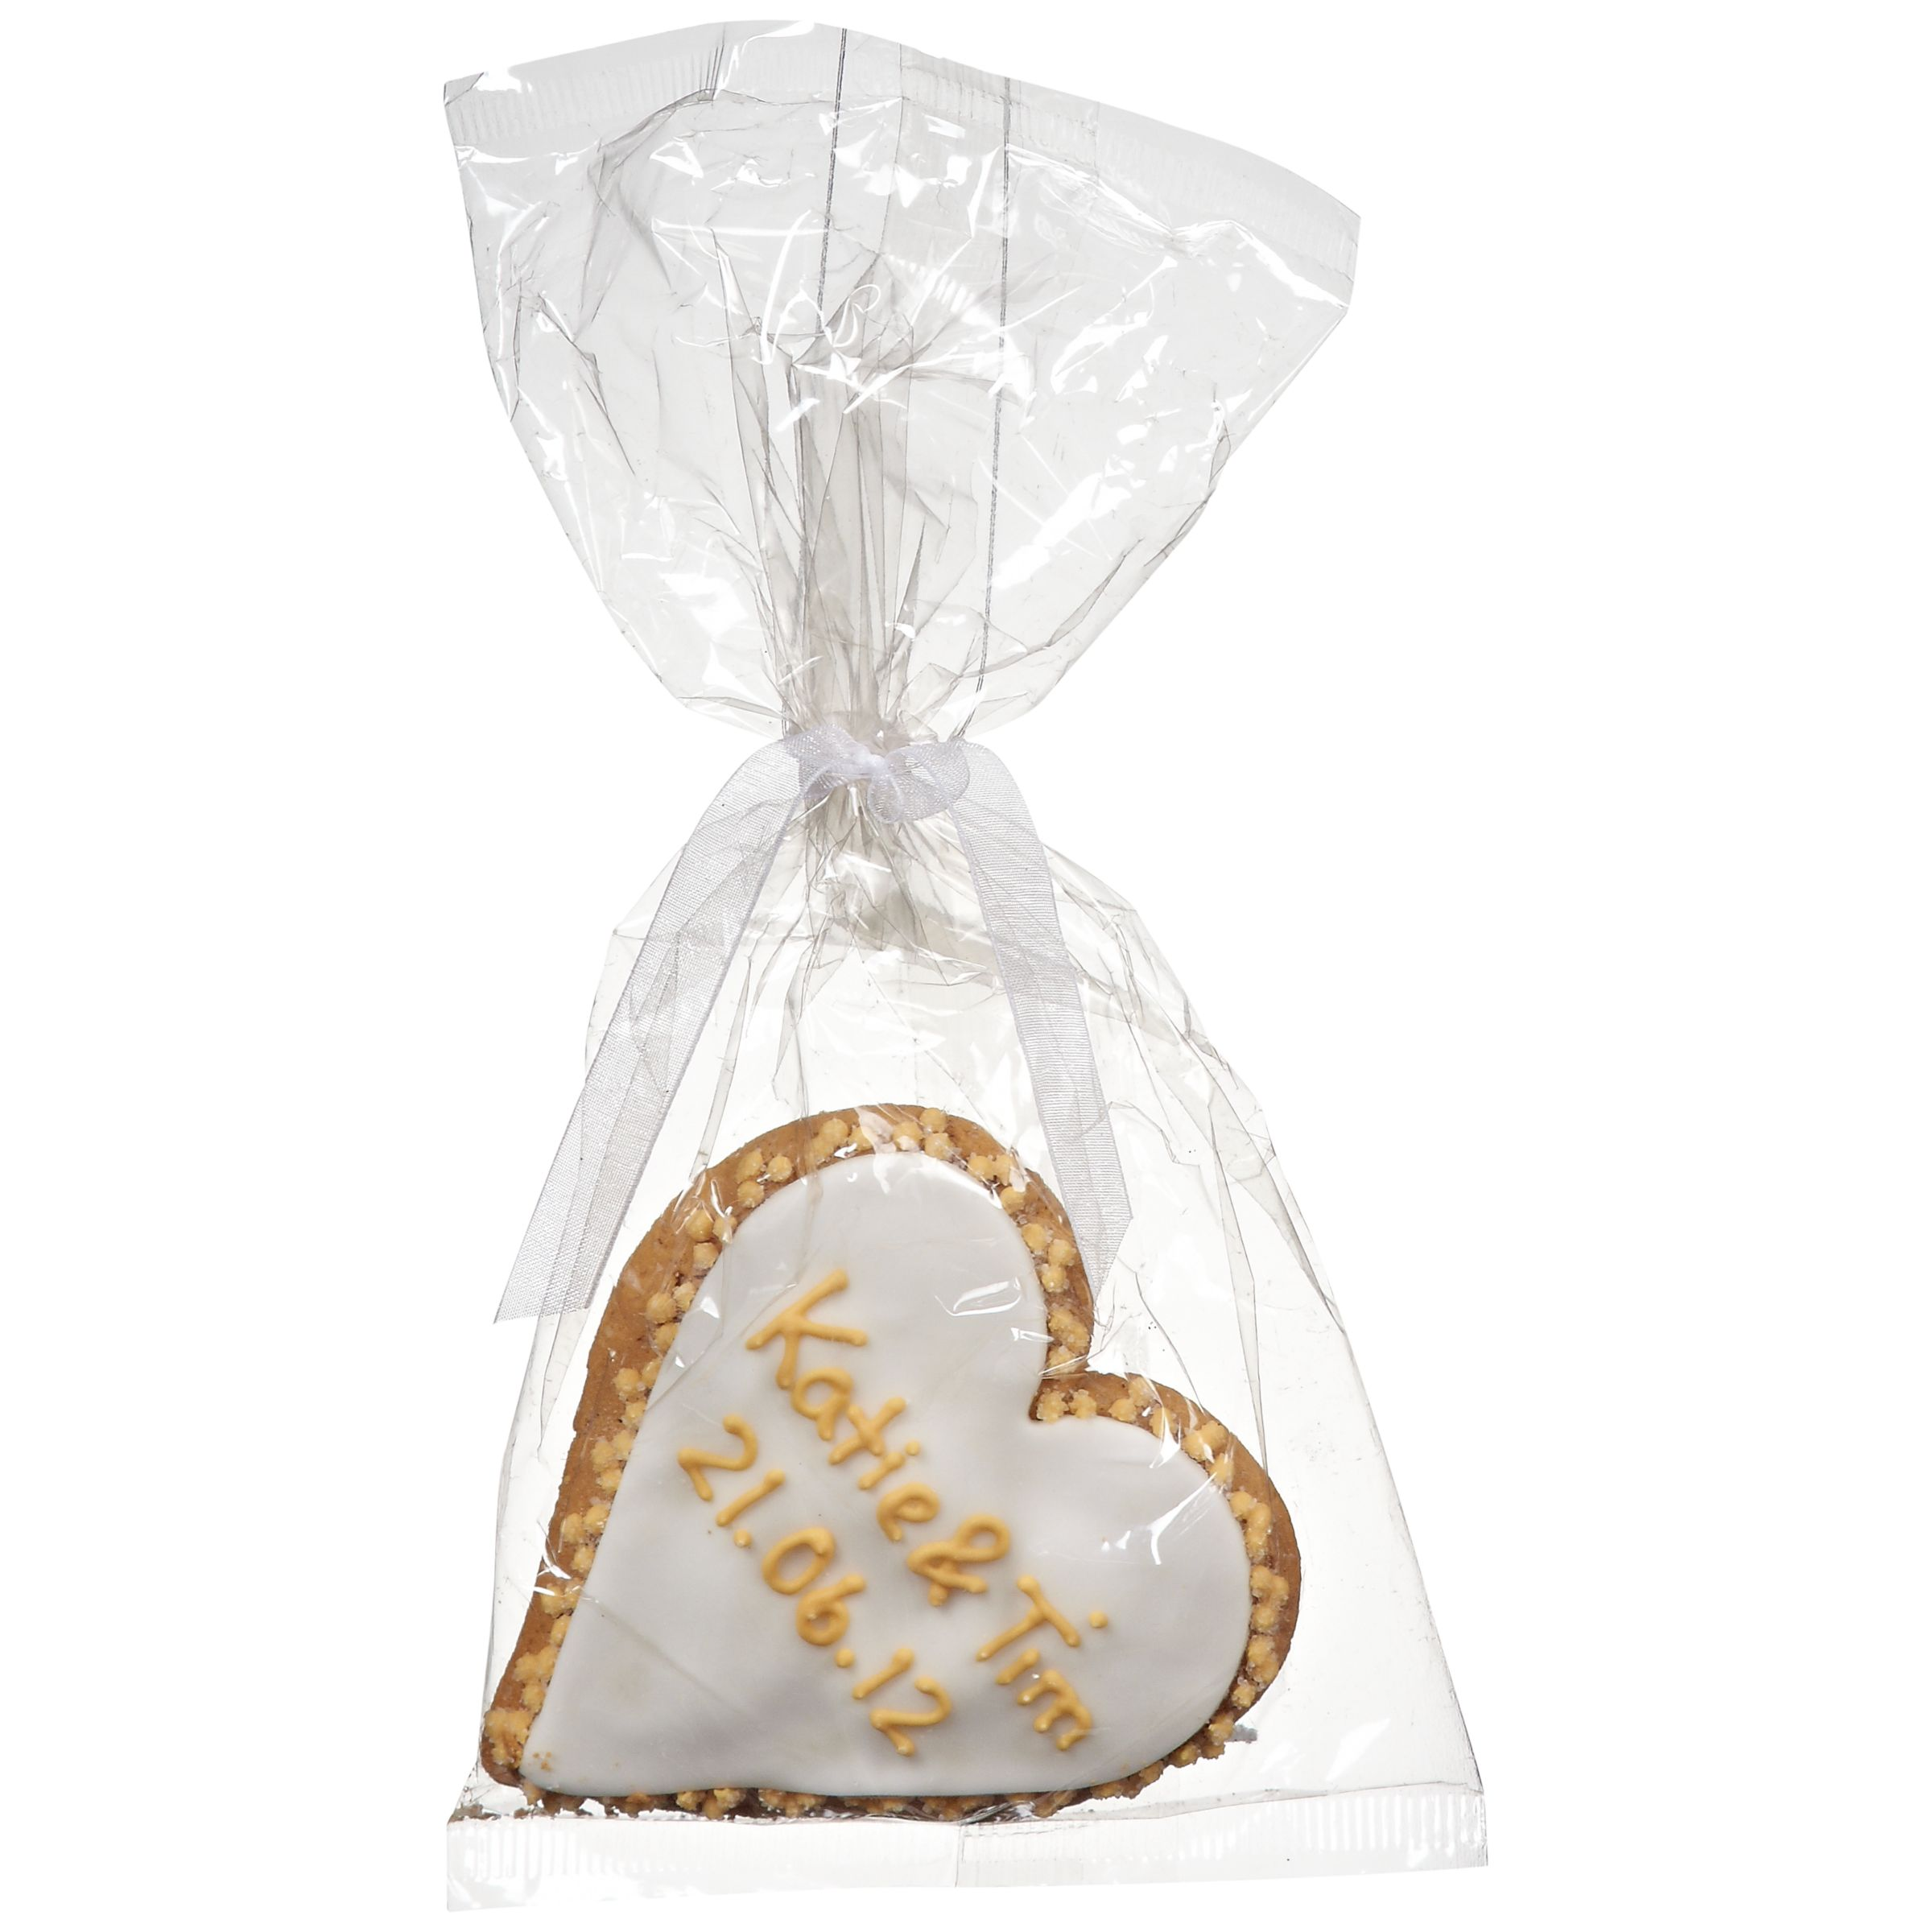 Personalised Wedding Gifts John Lewis : Buy Image on Food Personalised Wedding Heart Gingerbread, Gold, Pack ...